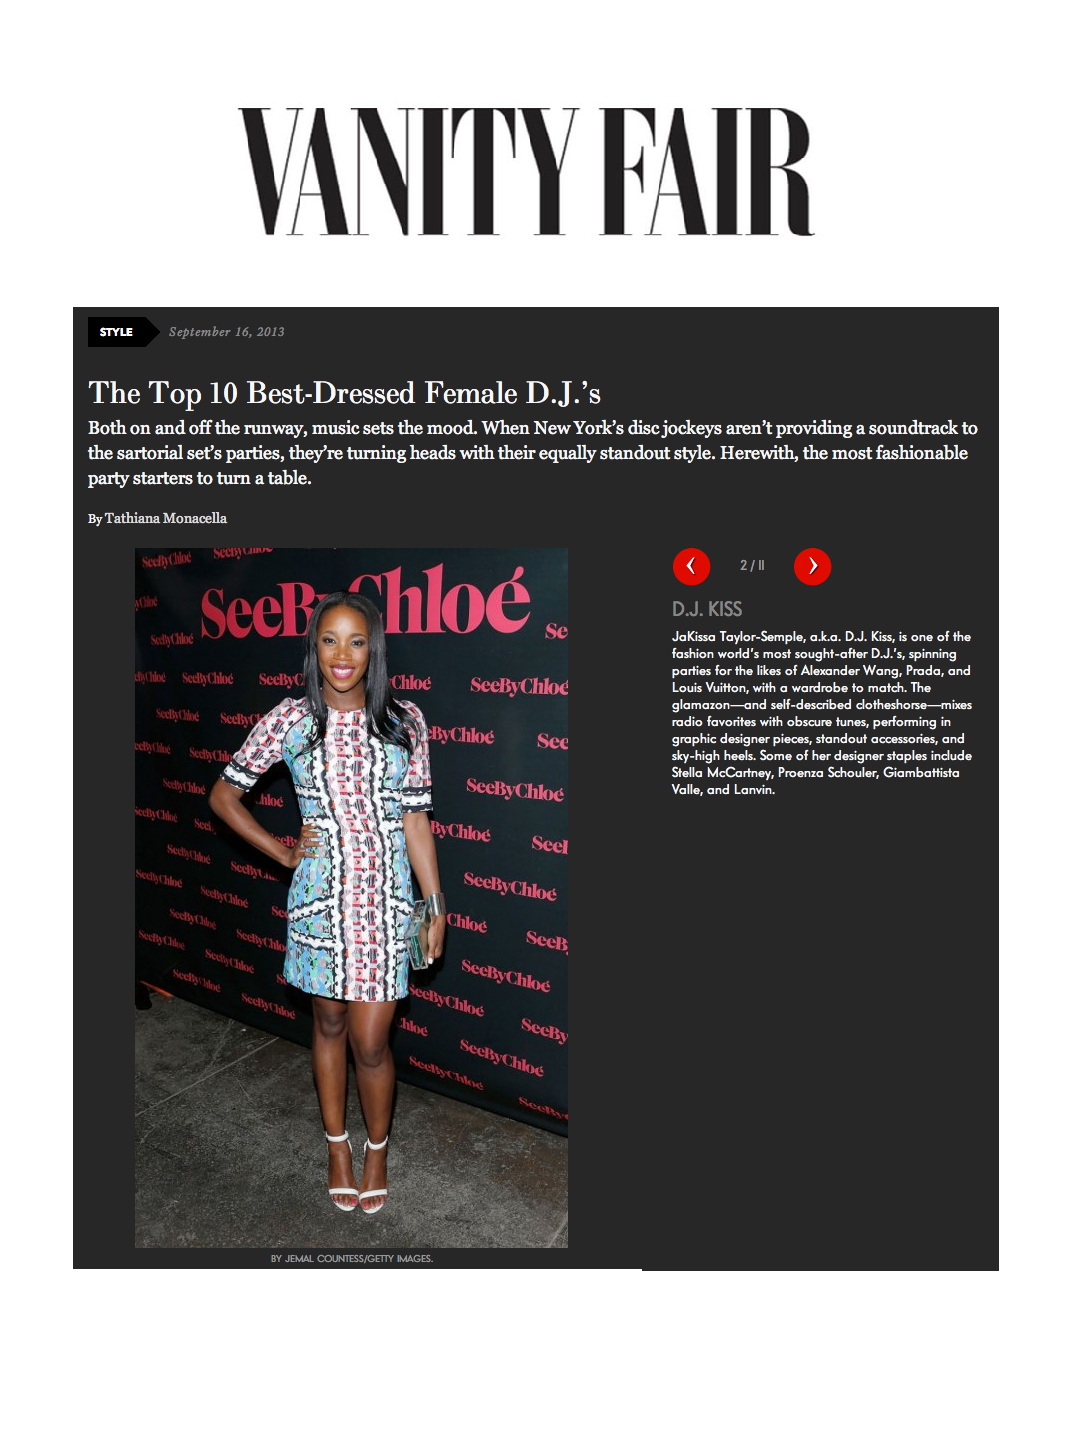 DJ Kiss Vanity Fair Best Dressed